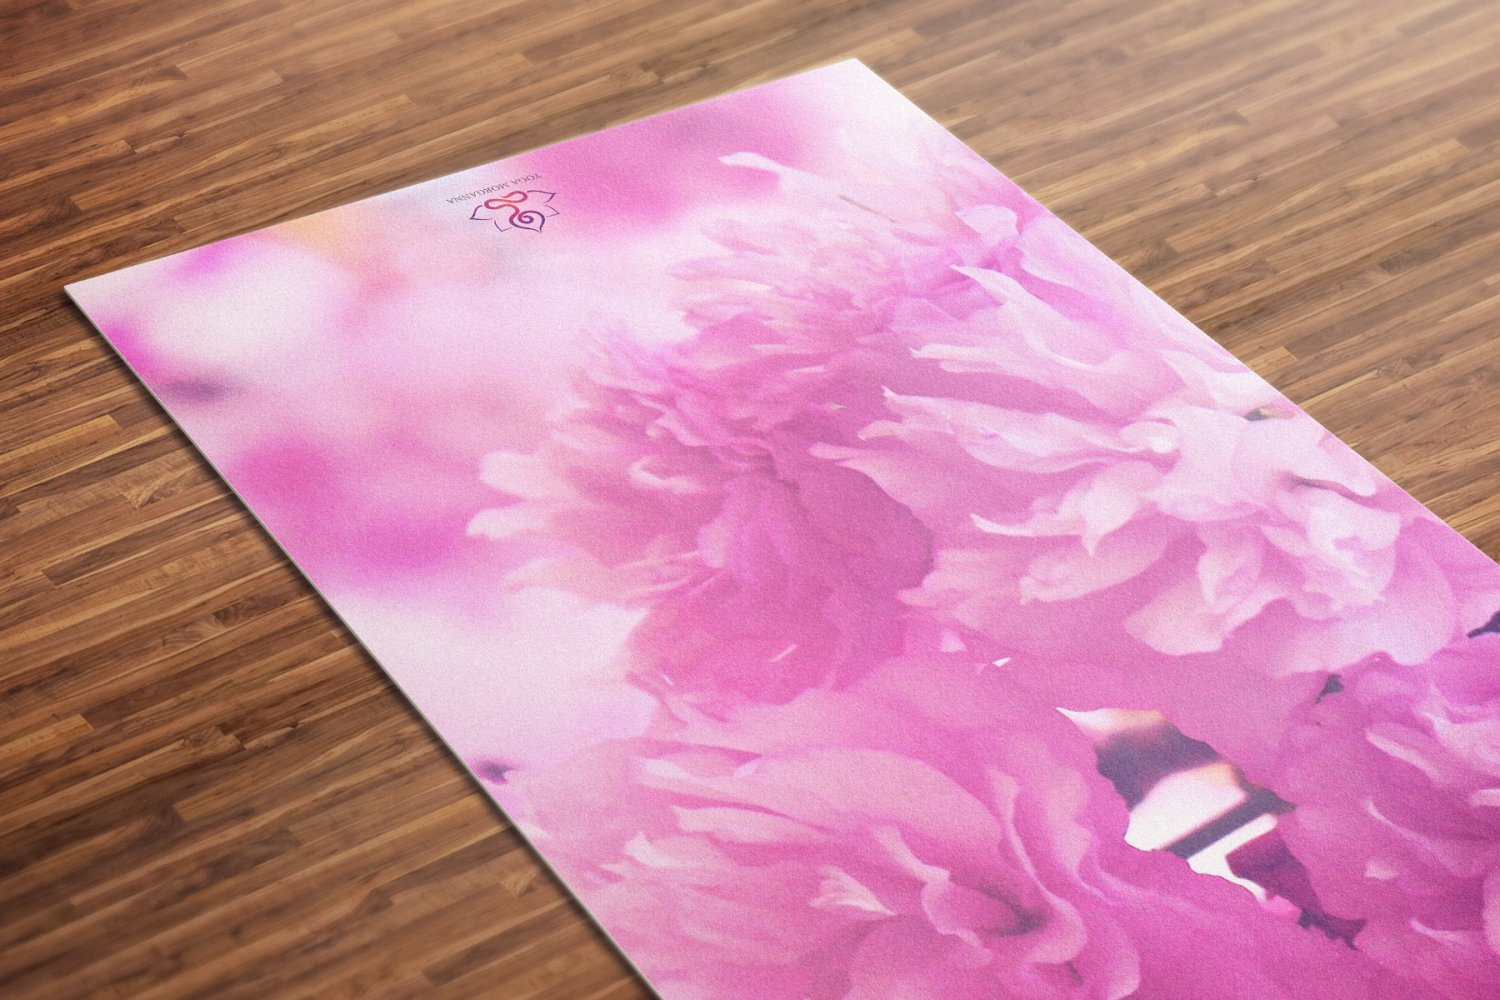 Pinkish Printed Yoga Mat Thick 5 mm 24 x 72 Pilates Pink Decor Rug Gift Fitness Exercise Meditation